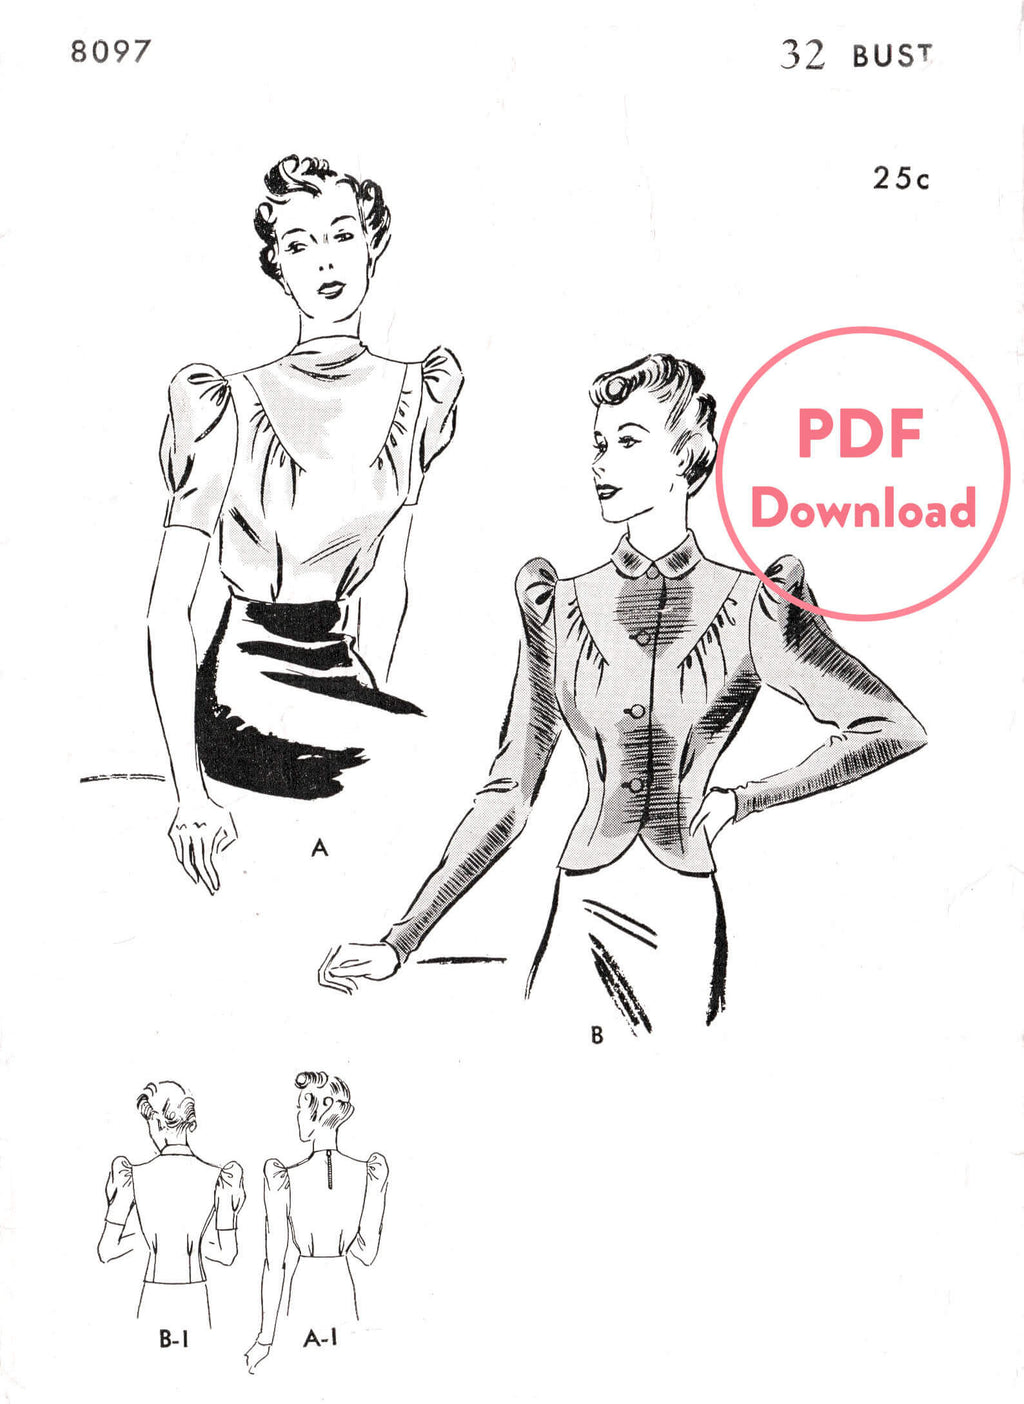 Butterick 8097 1930s blouse puff sleeves vintage sewing pattern PDF